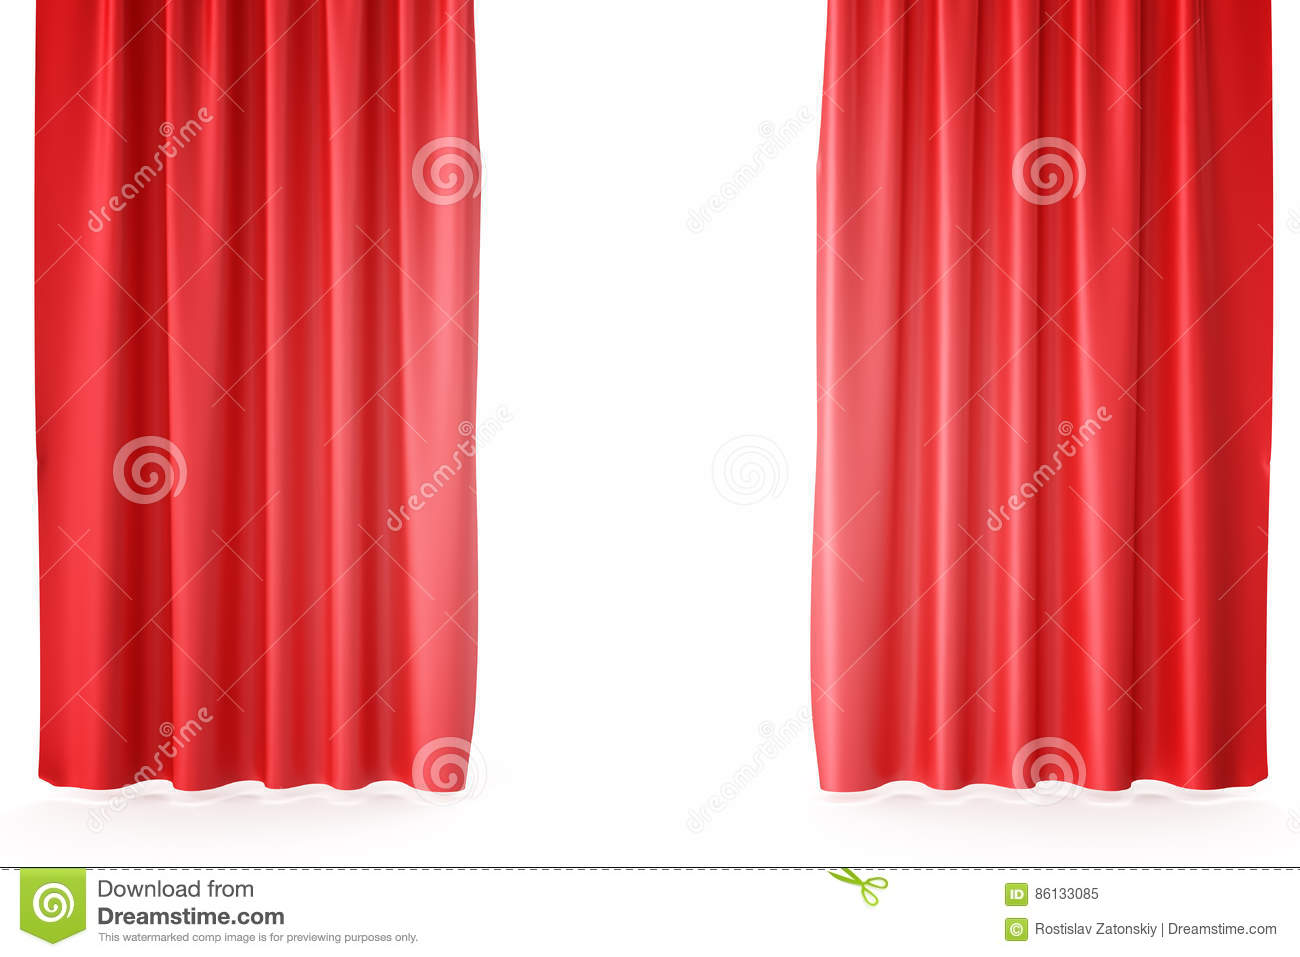 Red velvet curtains stage - Red Velvet Stage Curtains Scarlet Theatre Drapery Silk Classical Curtains Red Theater Curtain